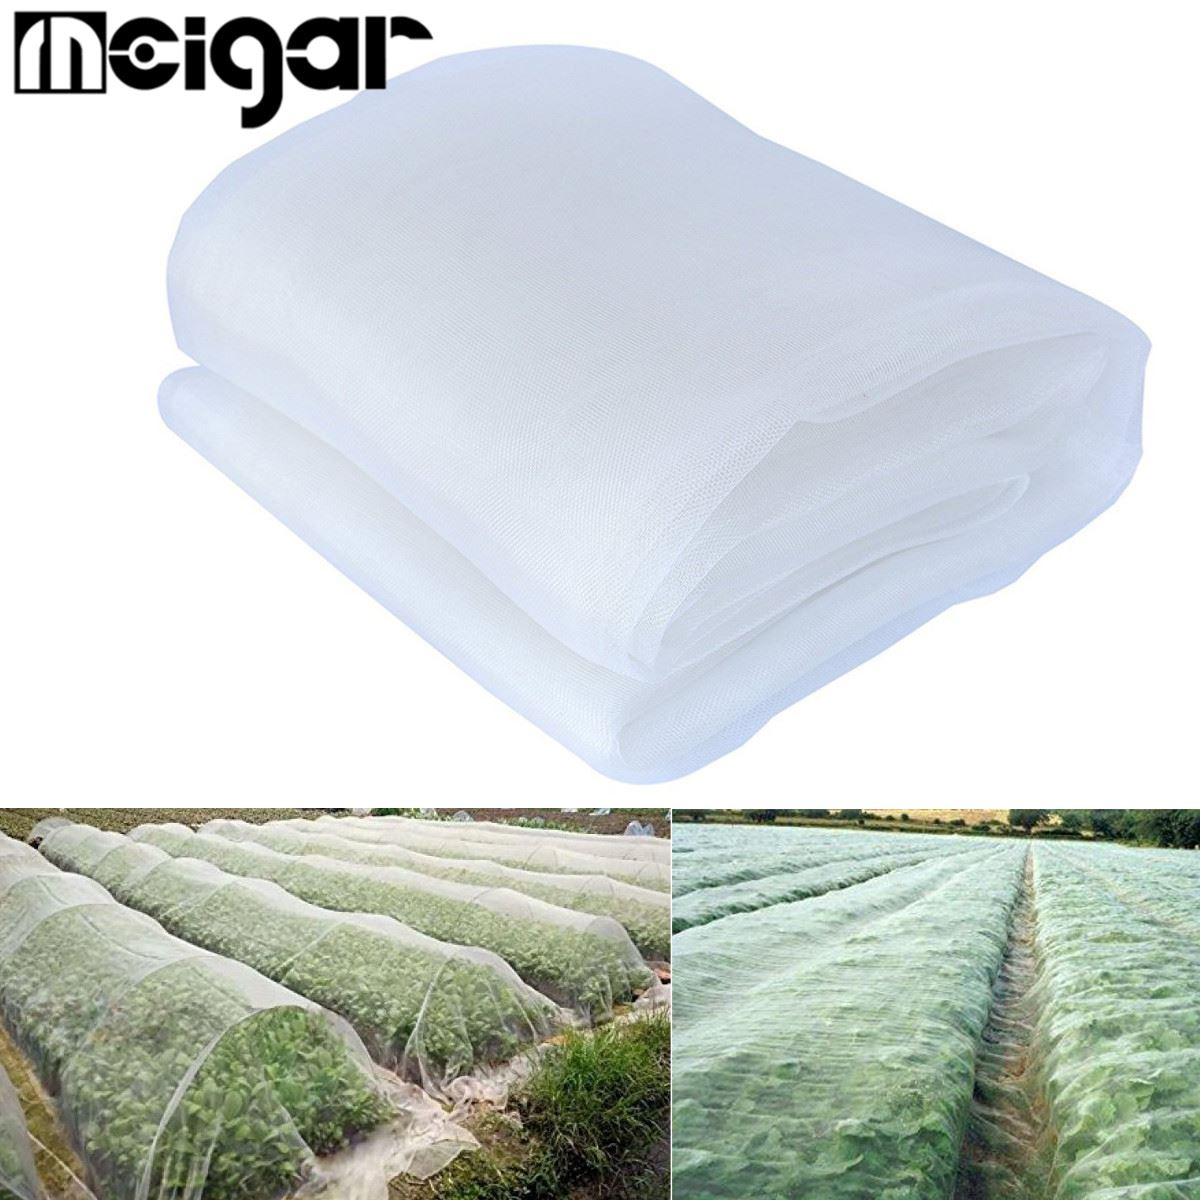 2.4x6M Mosquito Netting Bug Insect Bird Net Hunting Barrier Protect Planter Mesh Net Garden Orchard Pest Control Tools Supplies